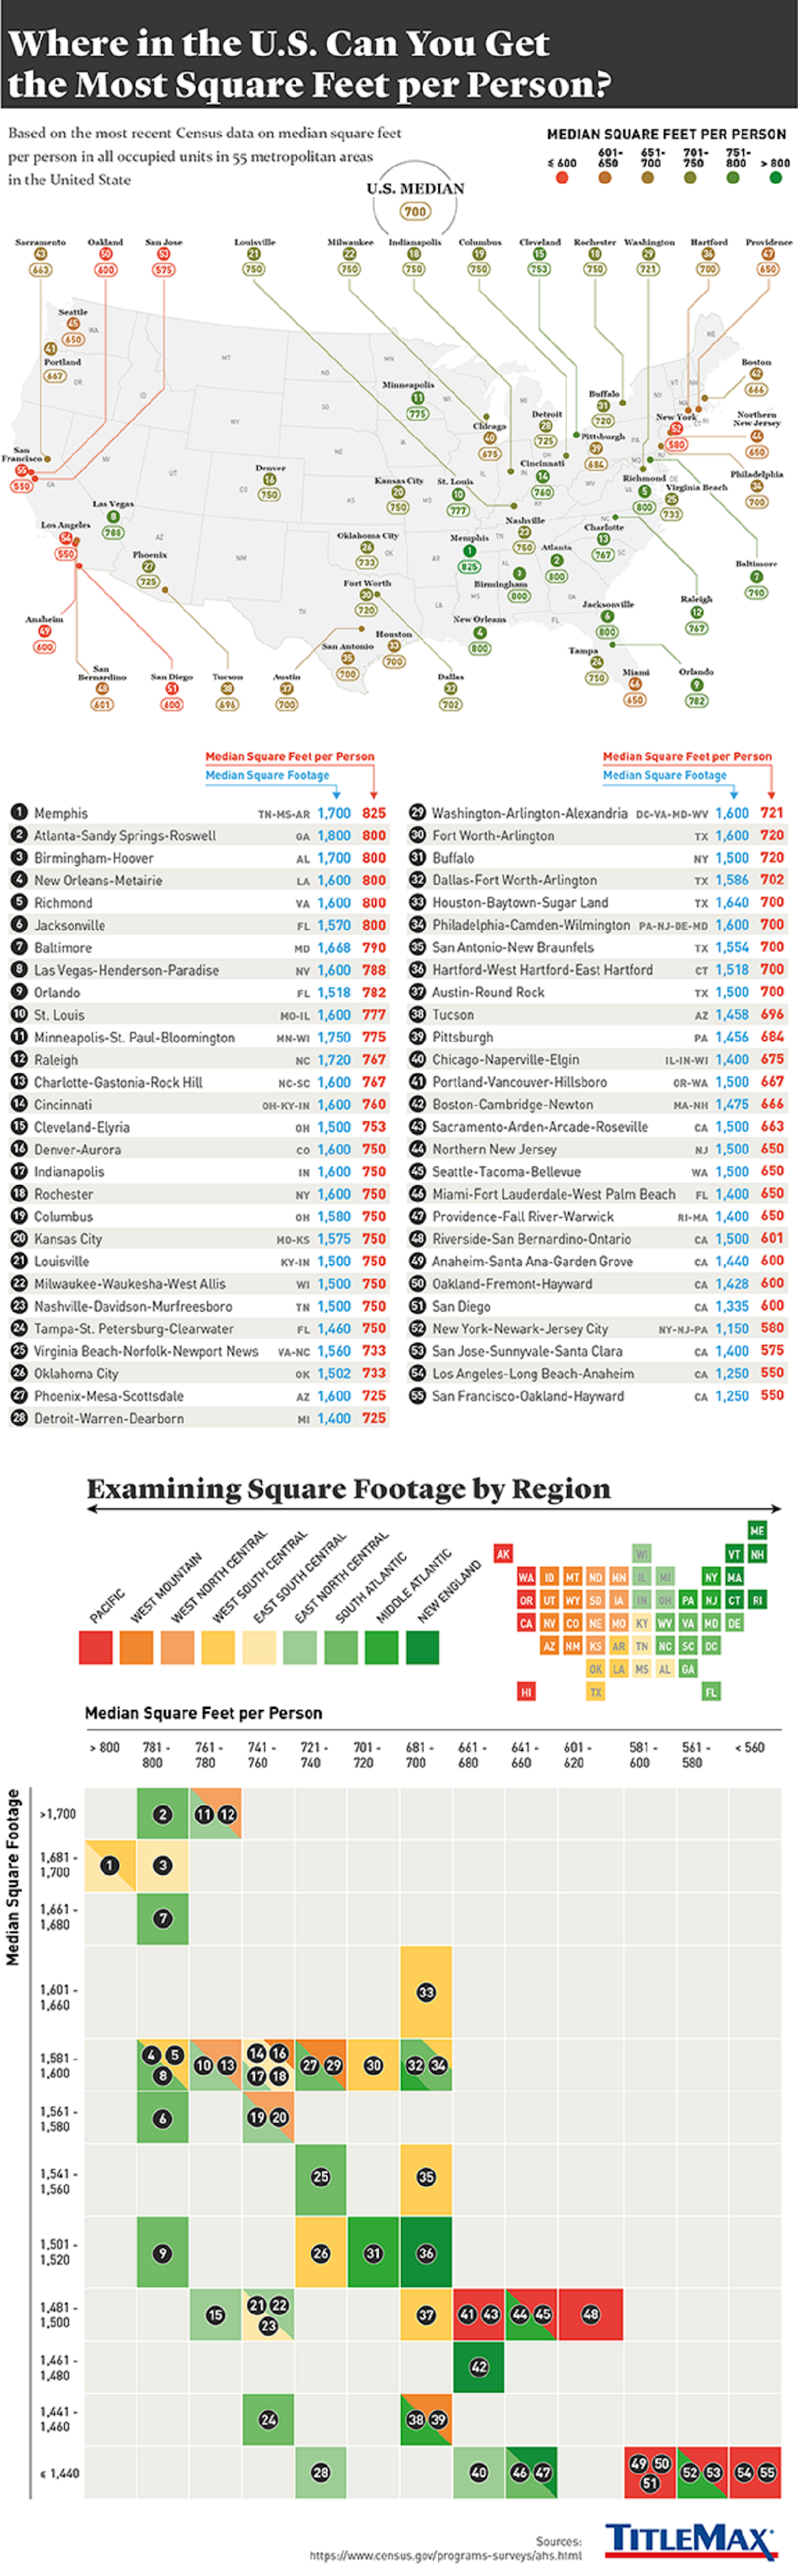 where-in-the-us-can-you-get-the-most-square-feet-per-person-infographic